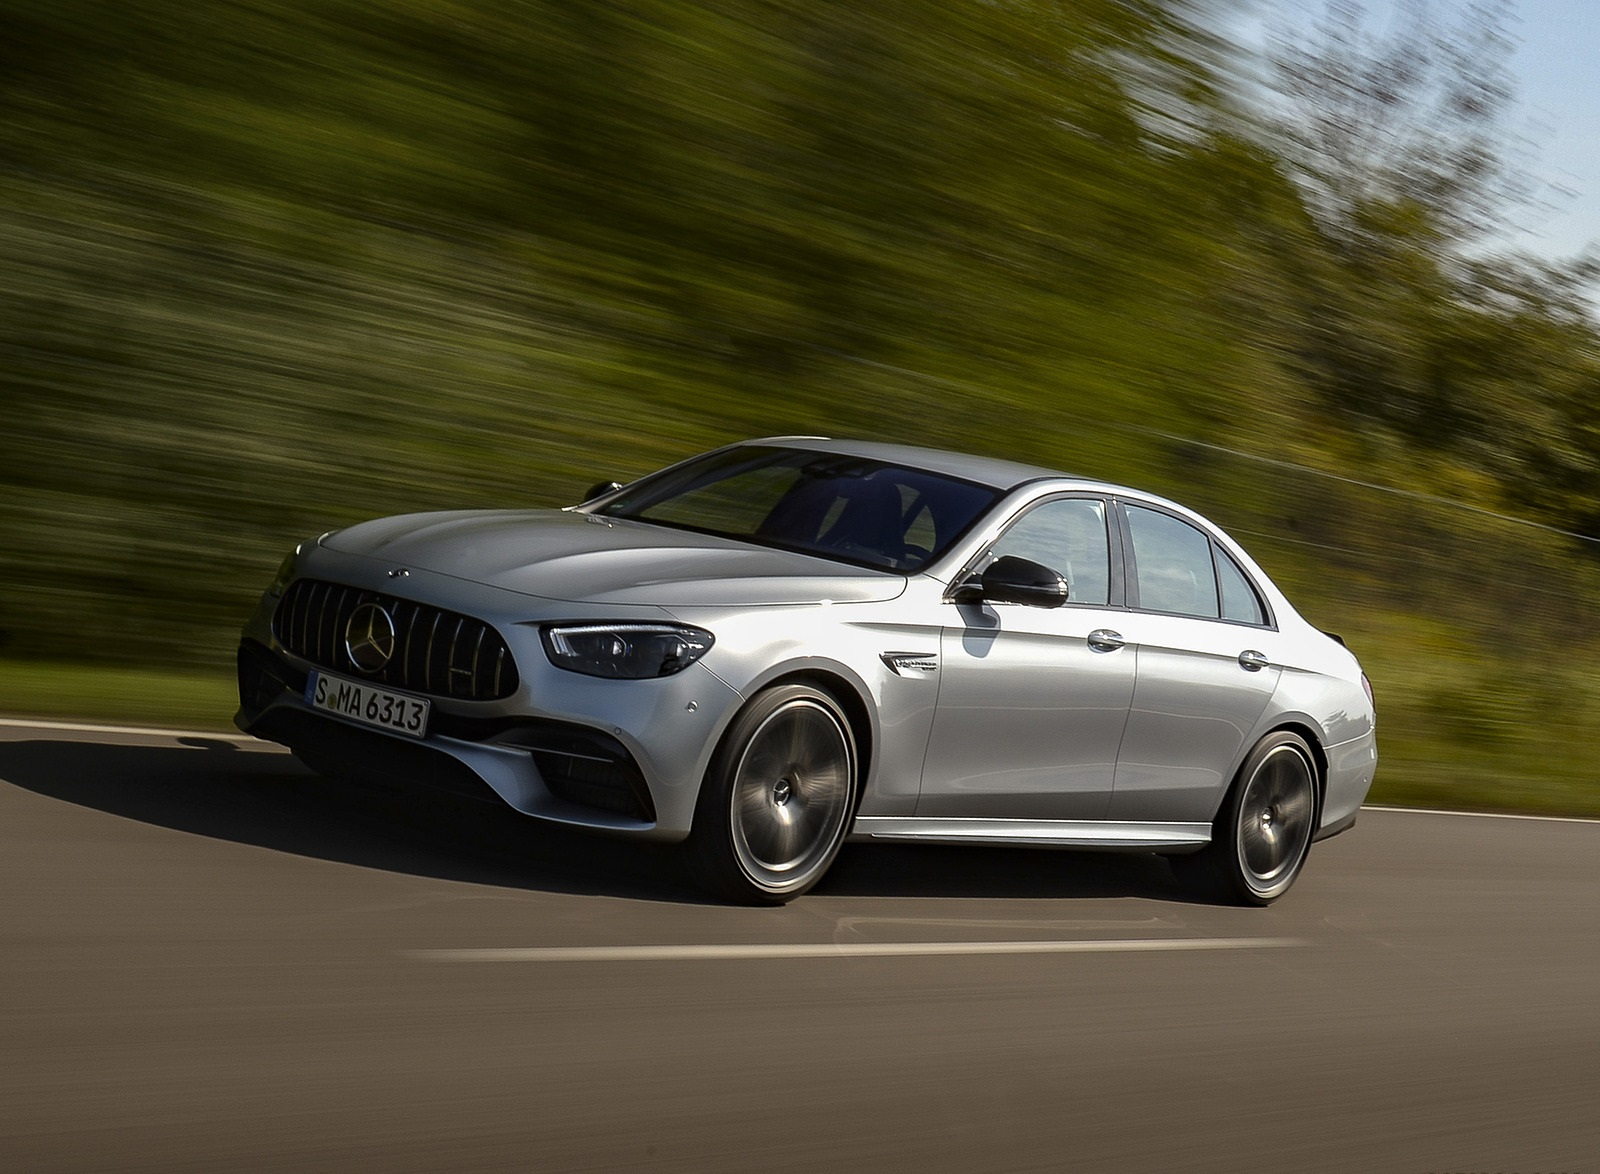 2021 Mercedes-AMG E 63 S 4MATIC+ (Color: High-Tech Silver Metallic) Front Three-Quarter Wallpapers (6)